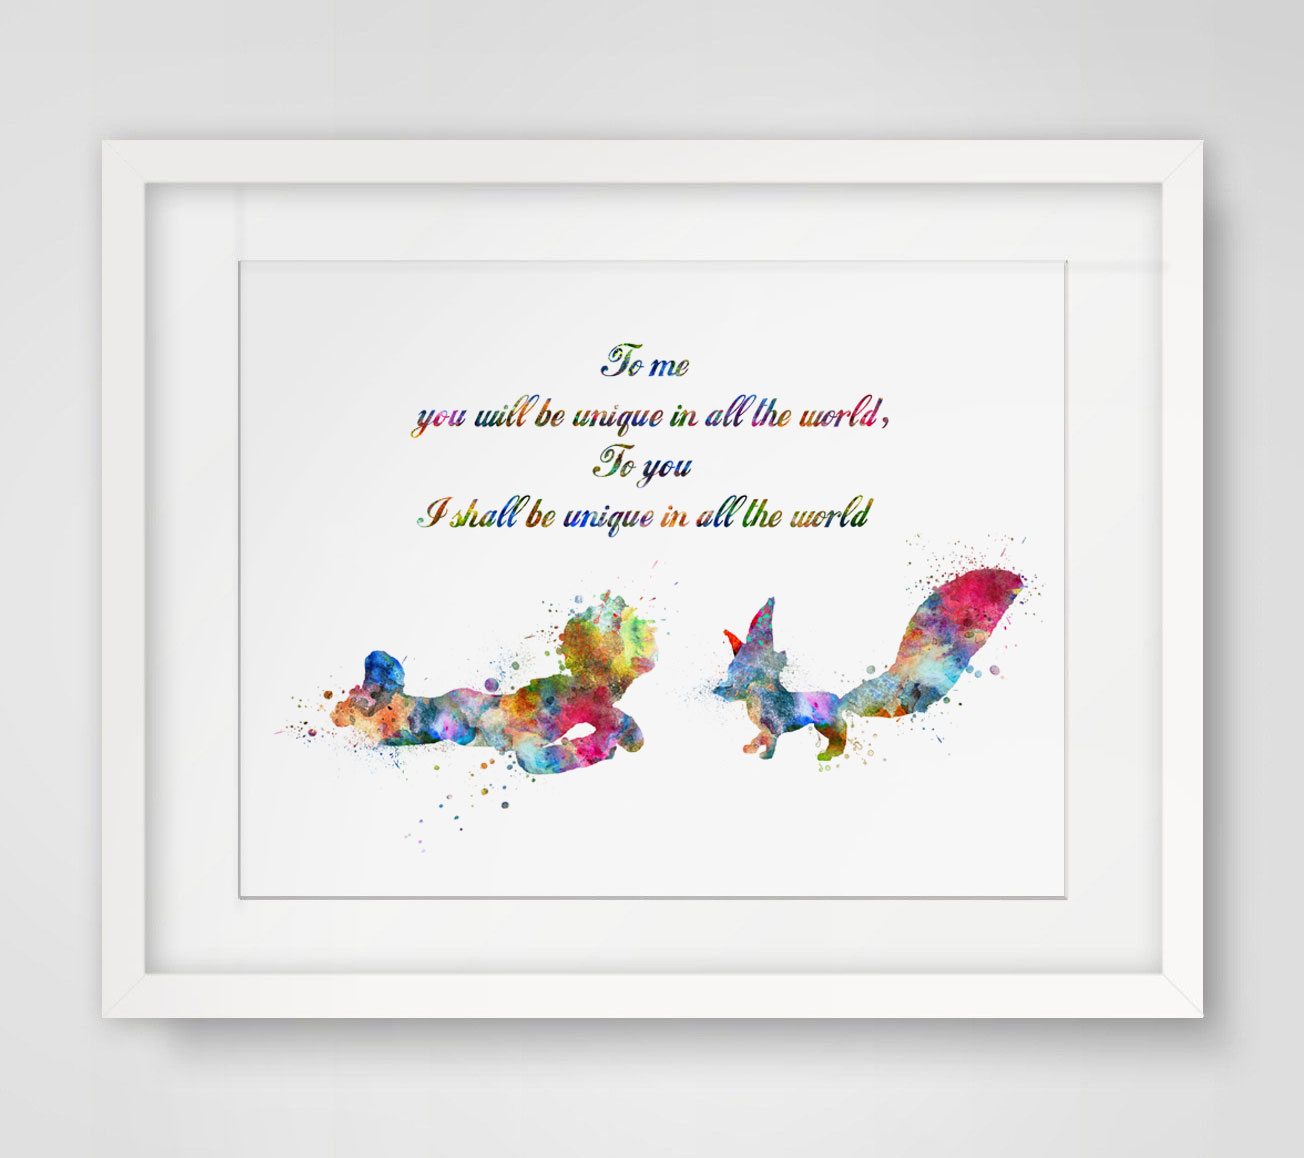 The Little Prince Fox To Me You Will Be Unique In All The World - Home Decor